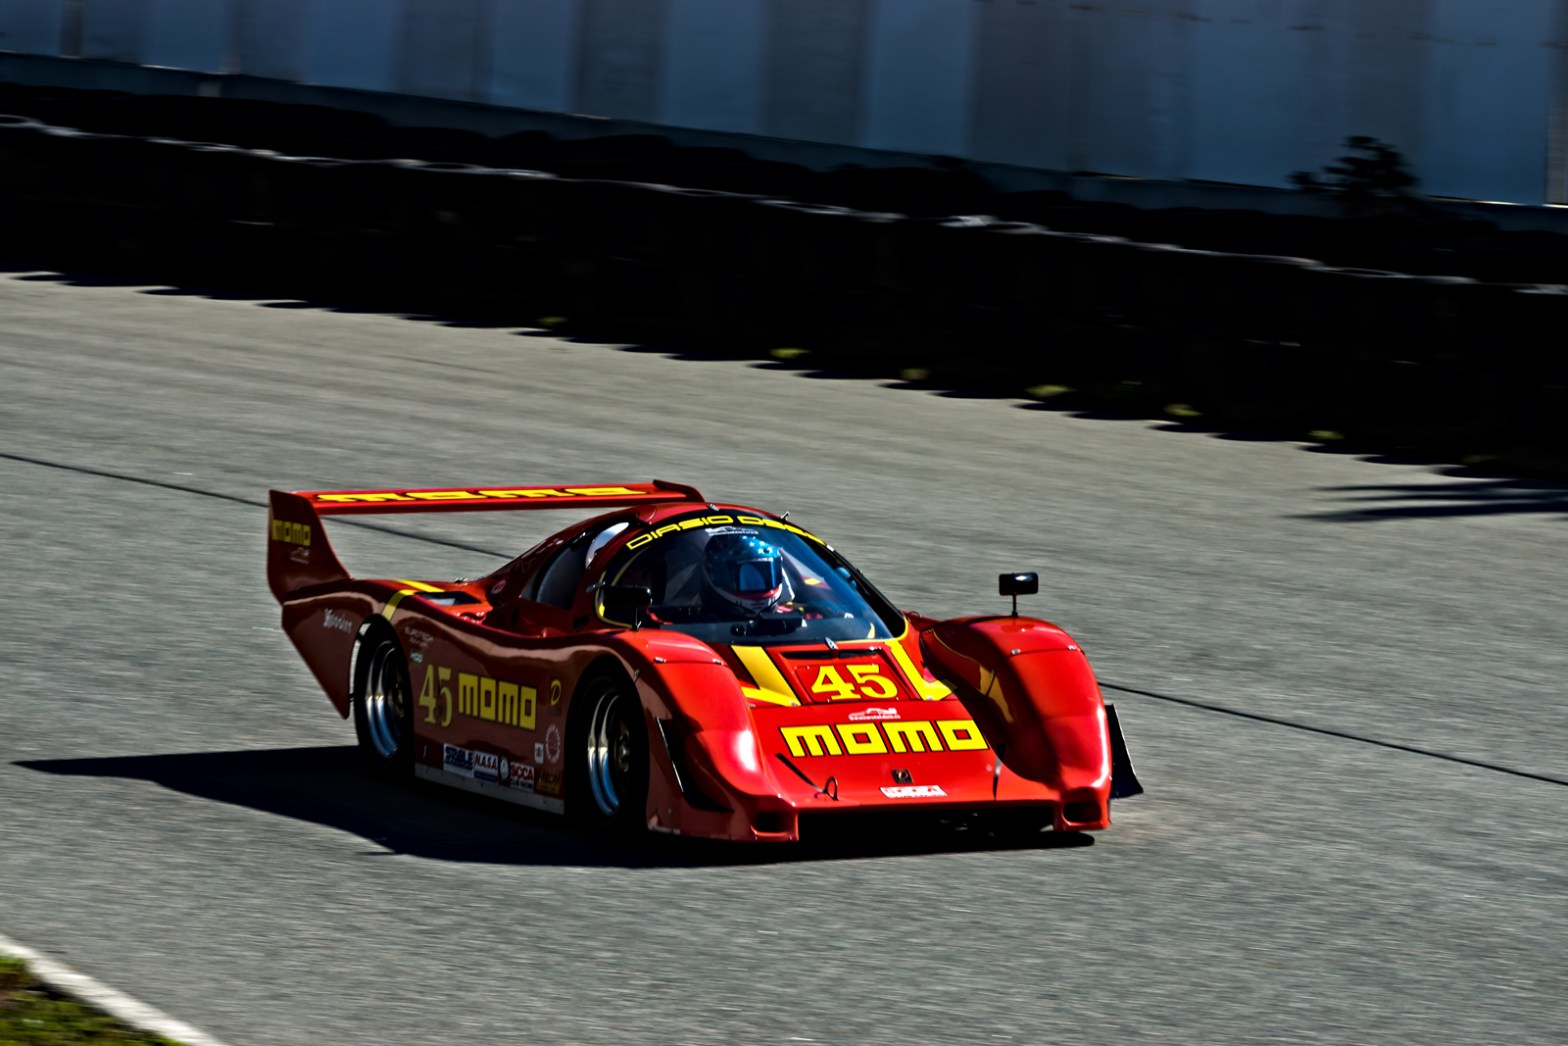 Diasio D962 race car by Race Cars for a Cause. The D962 is based on Porsche's 962 race car. Palmer Motorsports Park, MA